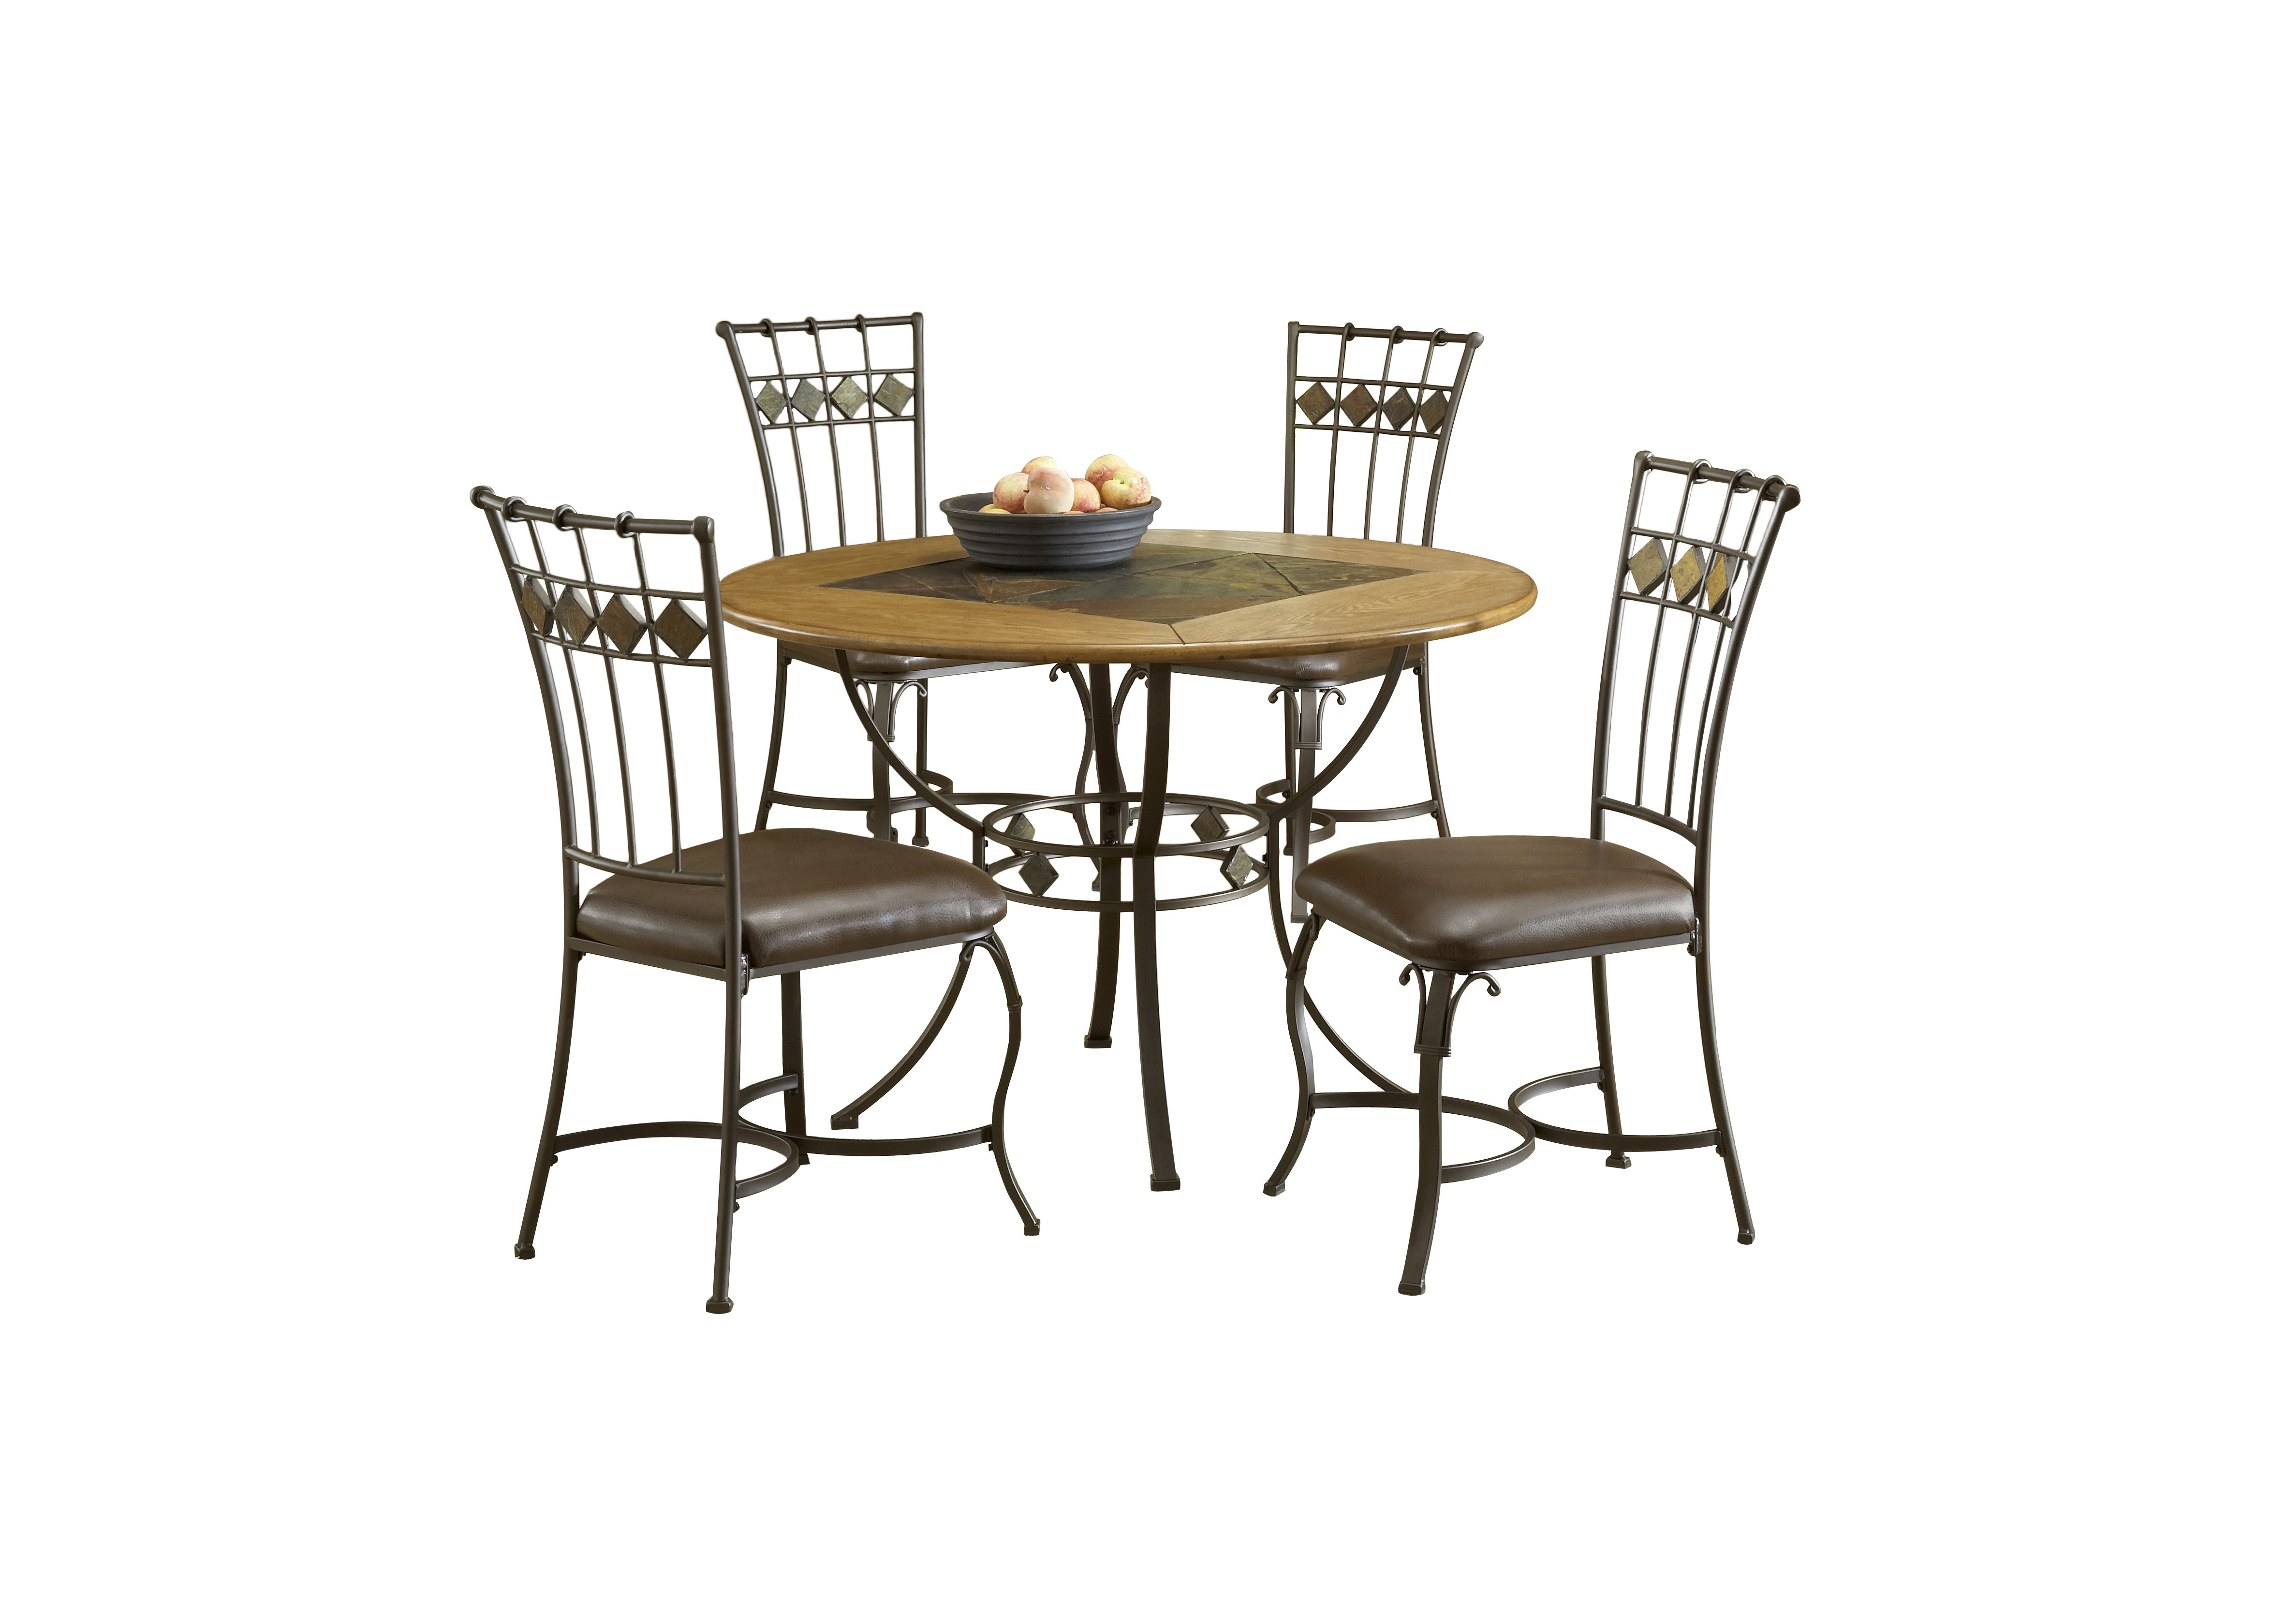 Red Barrel Studio Boyers 5 Piece Dining Set & Reviews | Wayfair Intended For Current Grady 5 Piece Round Dining Sets (Photo 5 of 20)